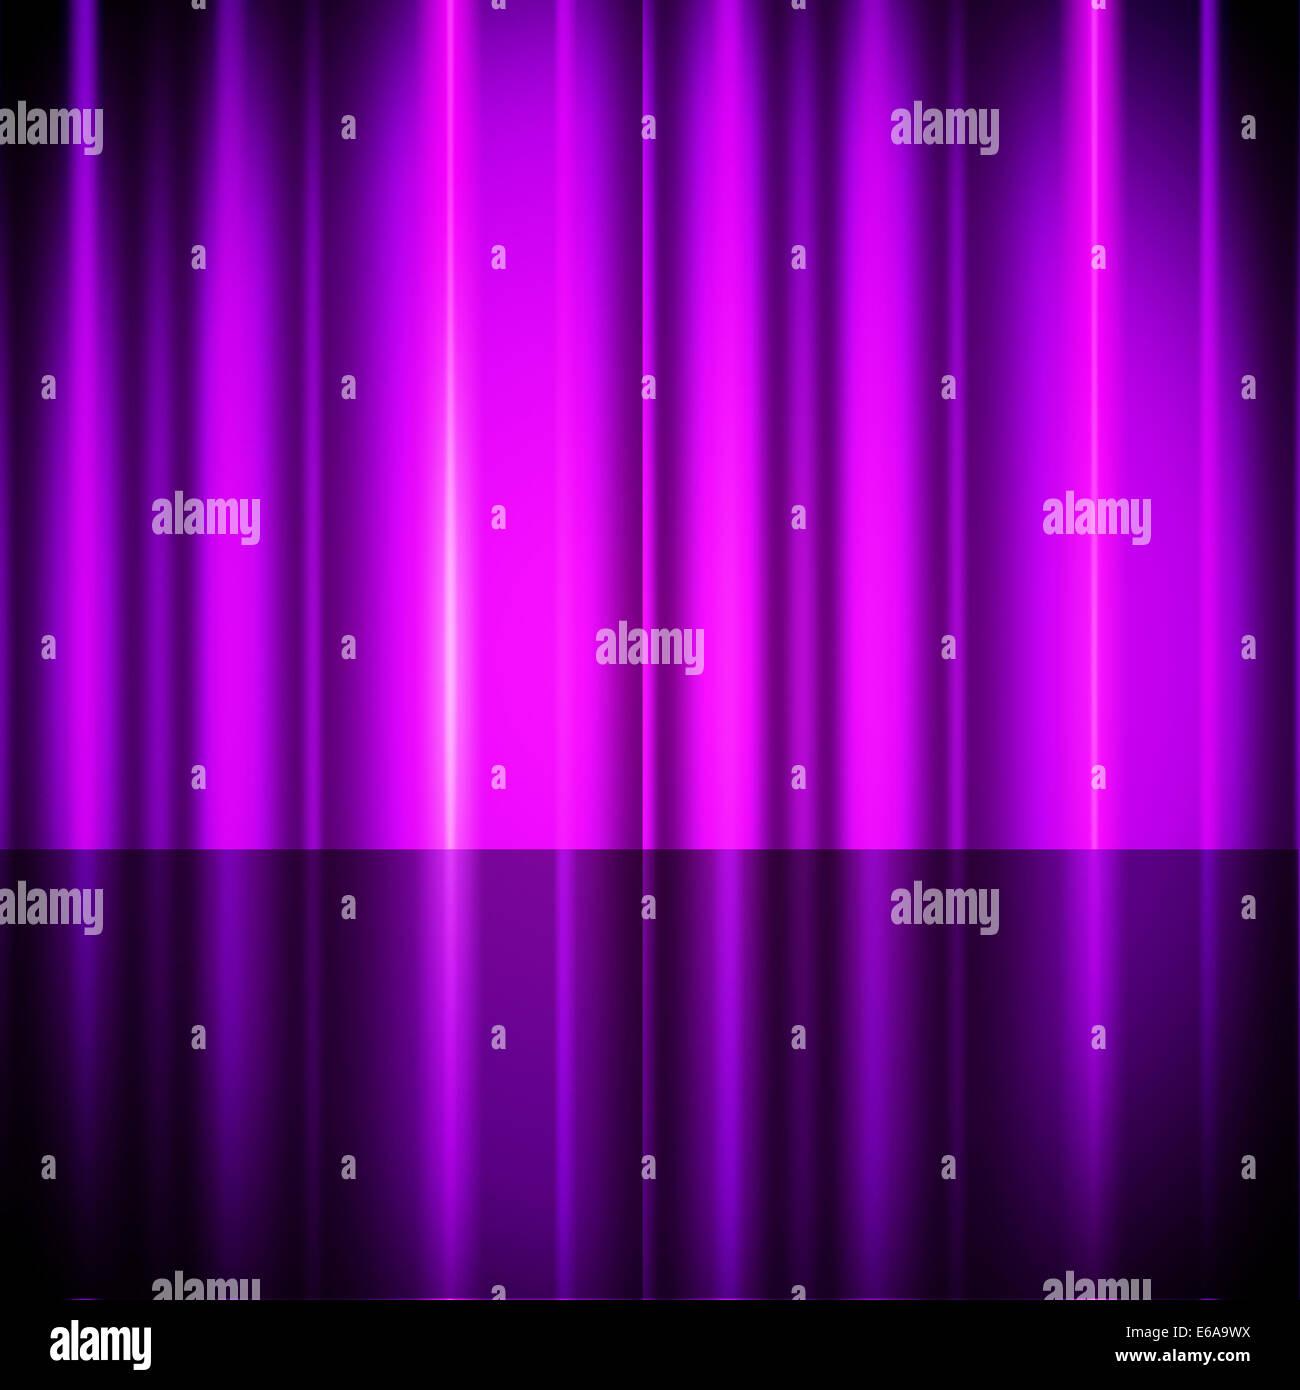 Bl blue stage curtains background - Bl Blue Stage Curtains Background Curtains Background Showing Theater Or Stage Download